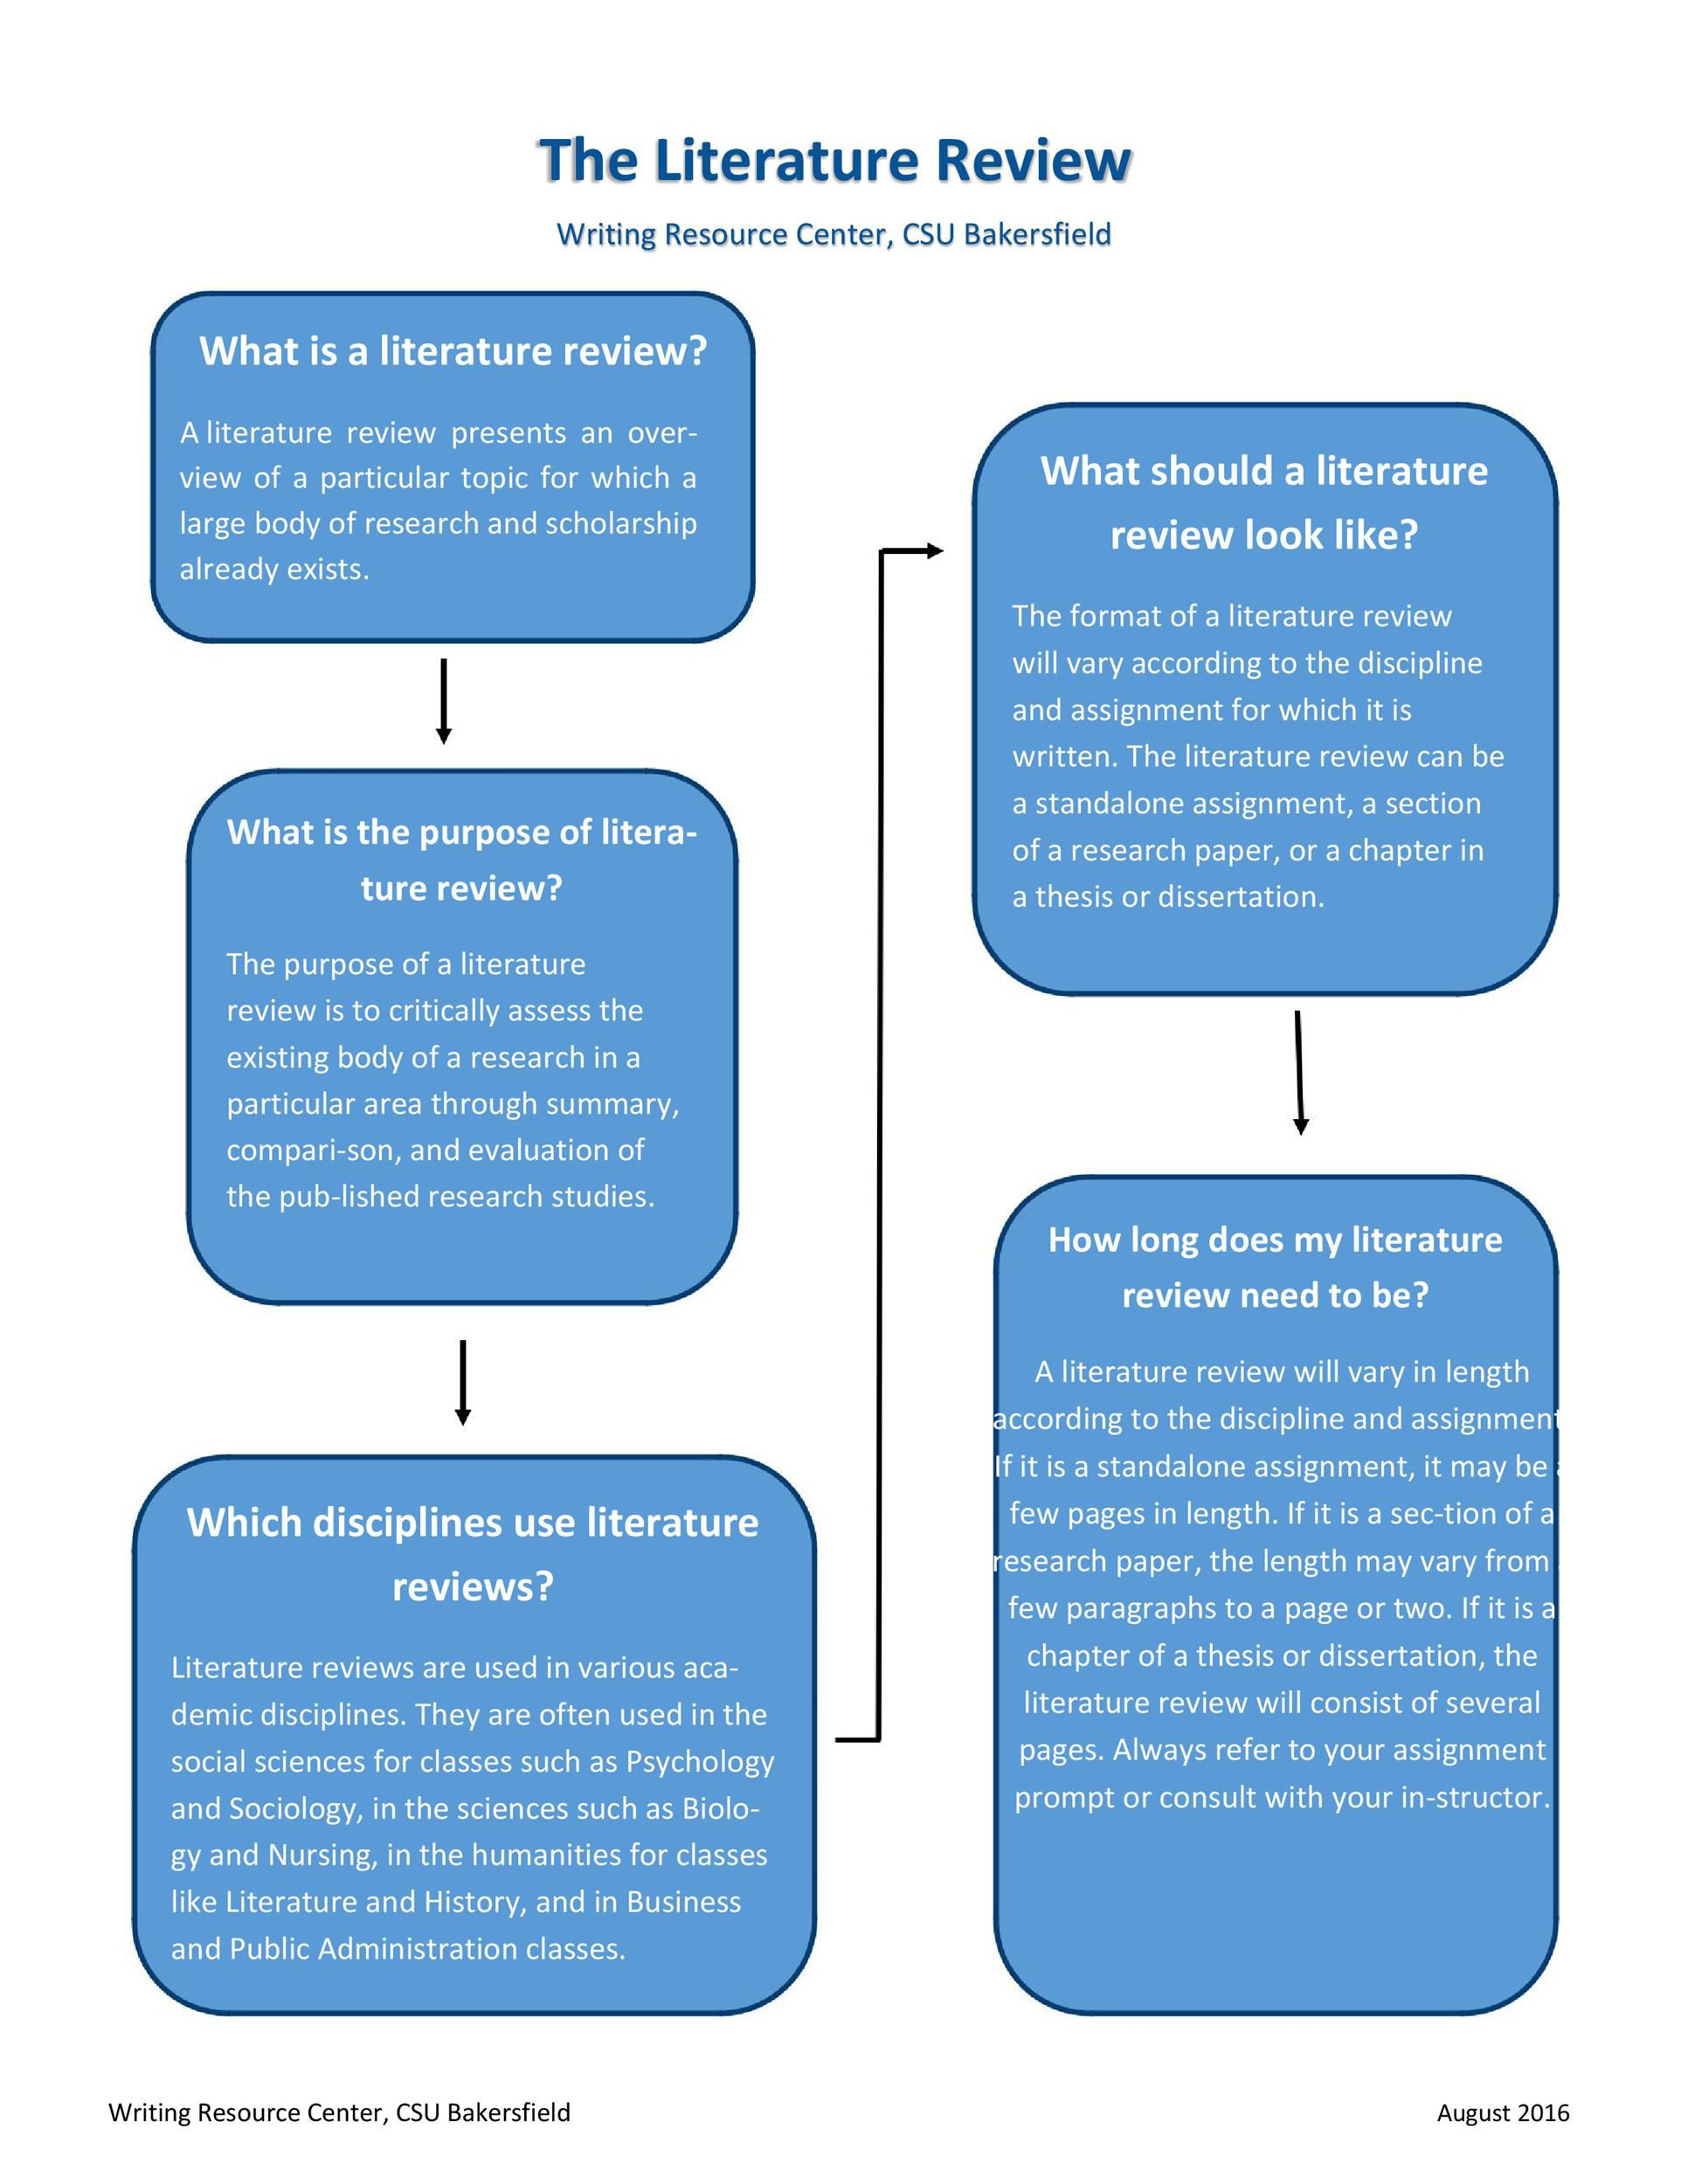 005 Remarkable Literature Review Outline Template Apa Image  Style ExampleFull